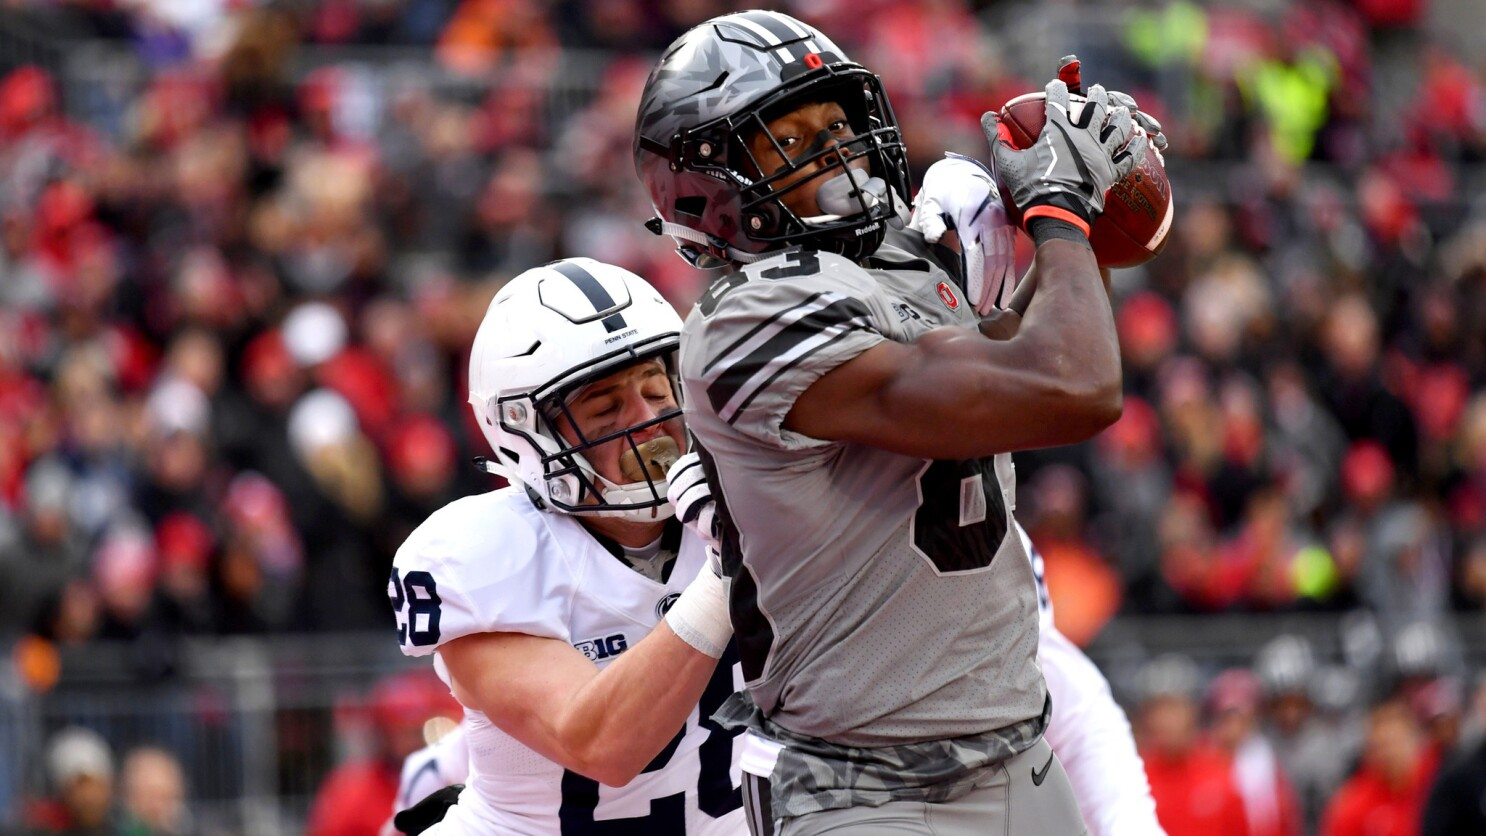 College football: Ohio State upsets No  2 Penn State